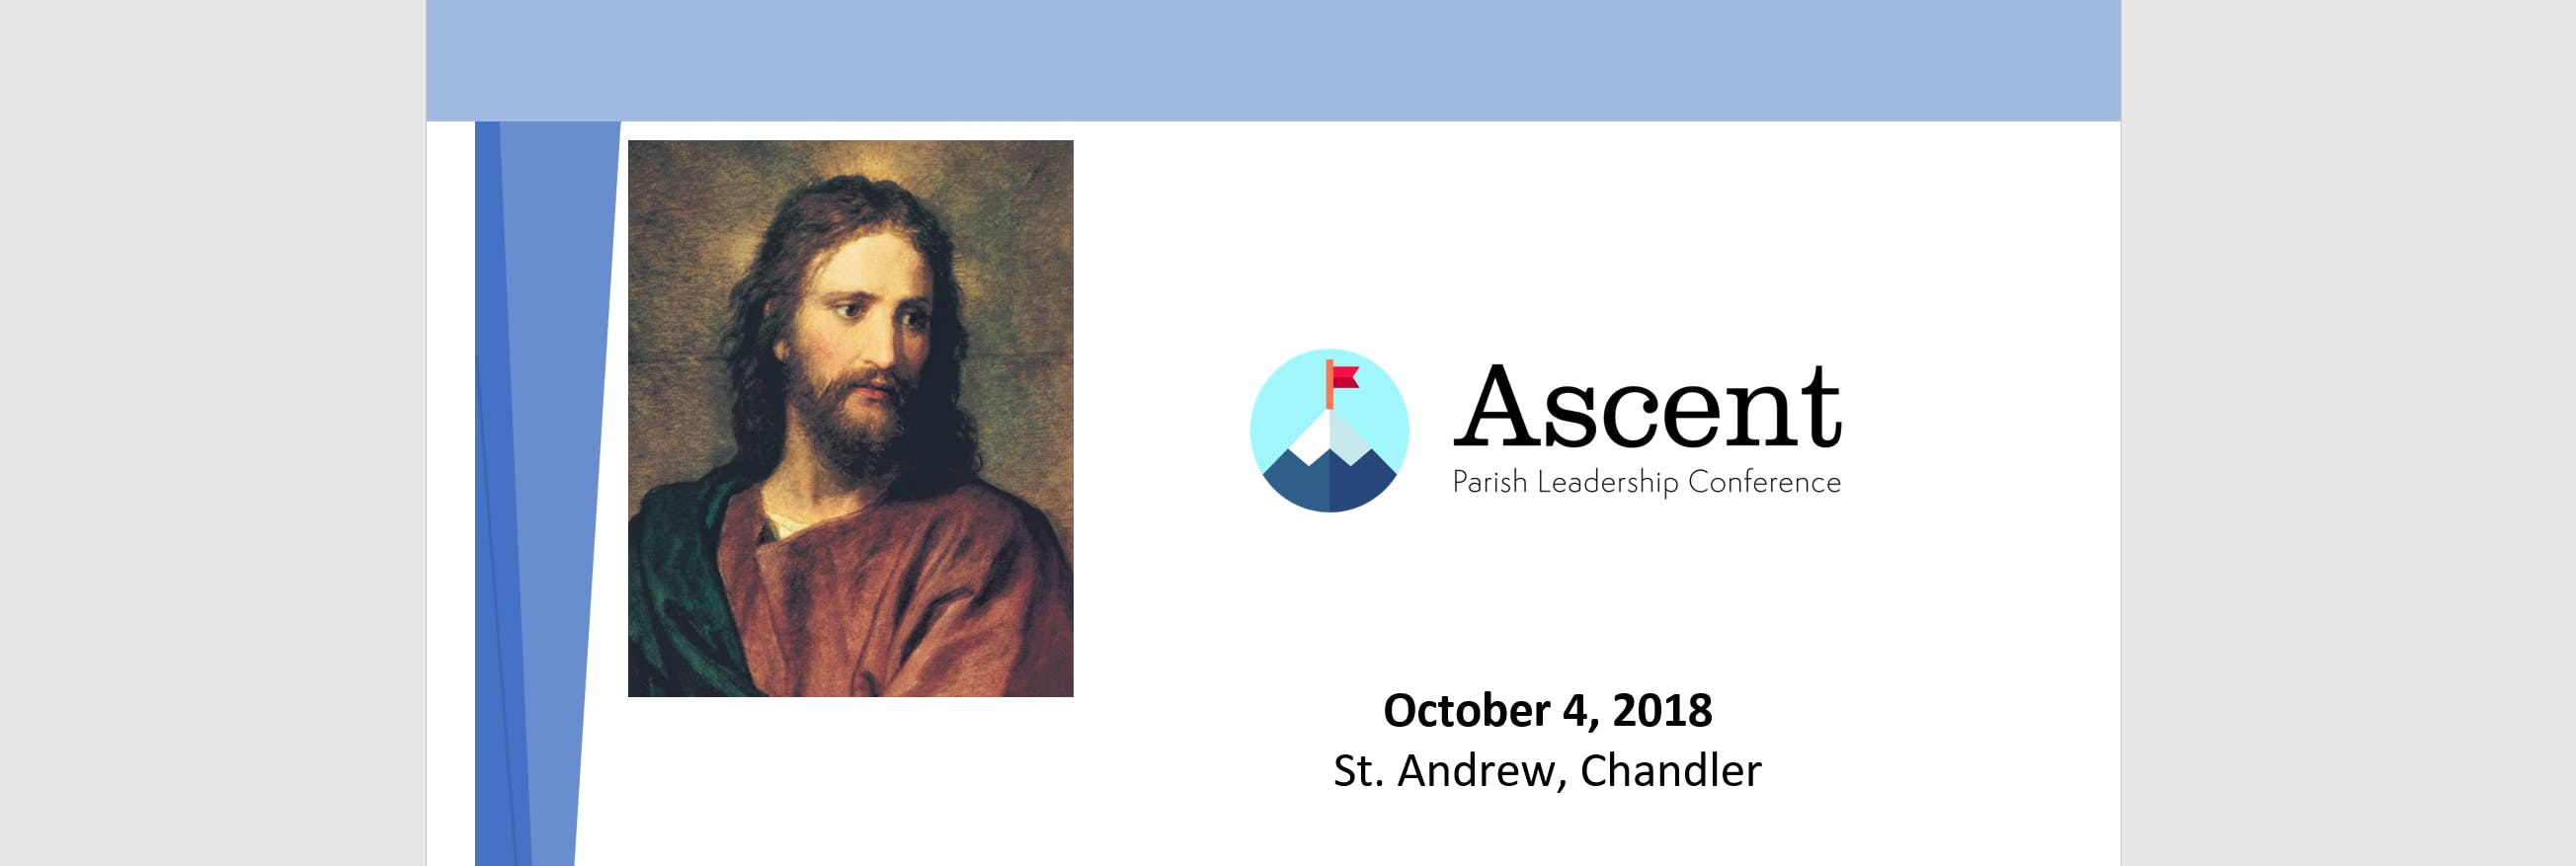 2018 Ascent Leadership Conference - St. Andrew the Apostle